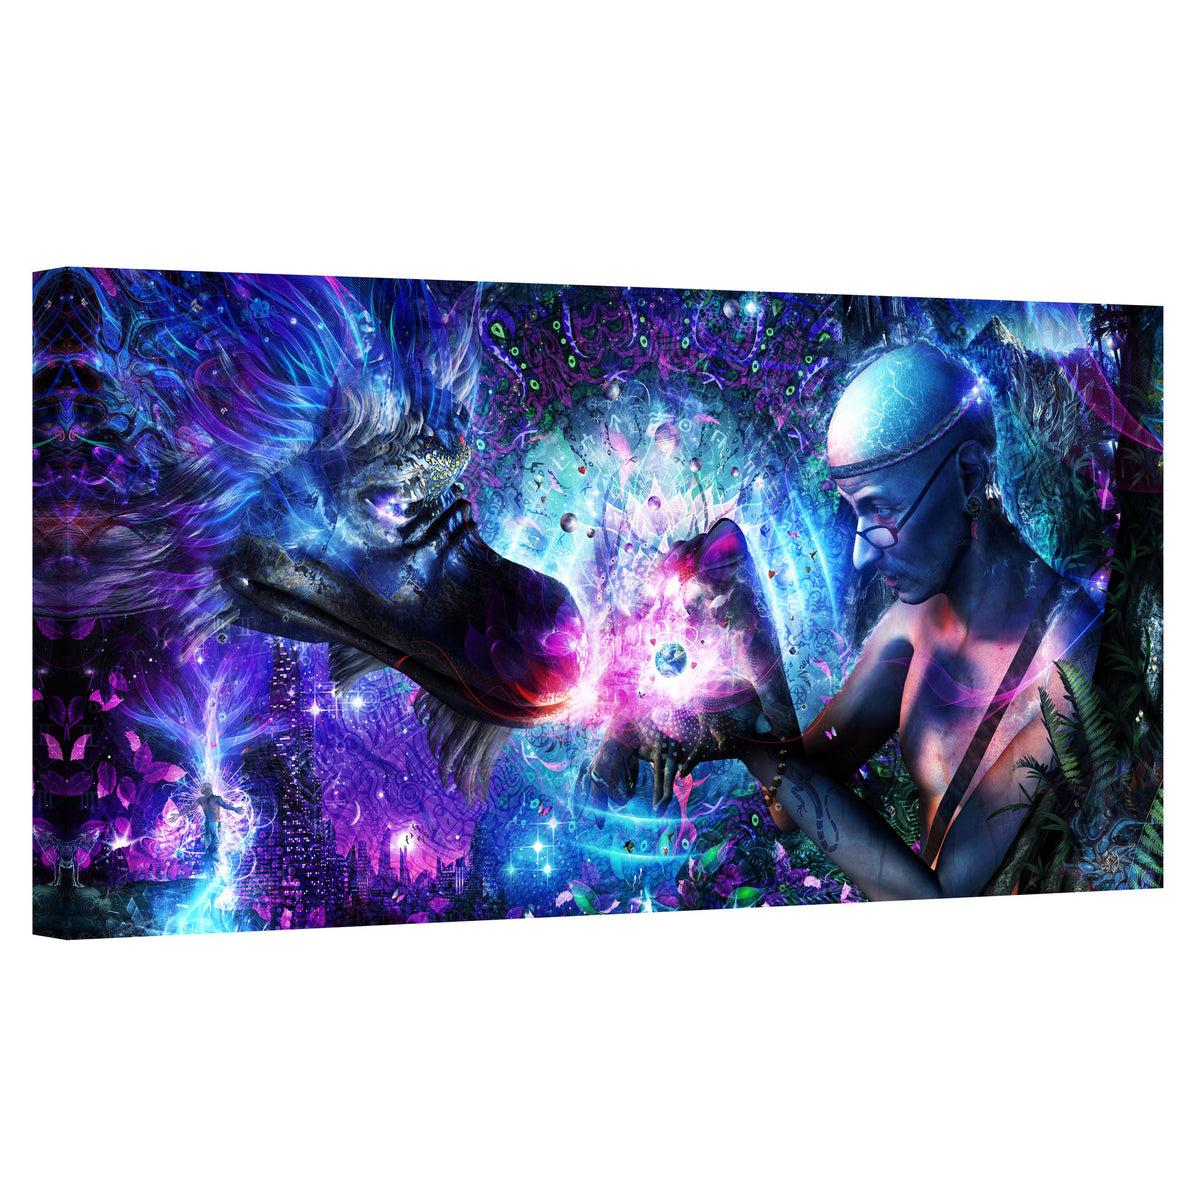 "Epic Graffiti ""A Spirit's Silent Cry"" by Cameron Gray, Giclee Canvas Wall Art"